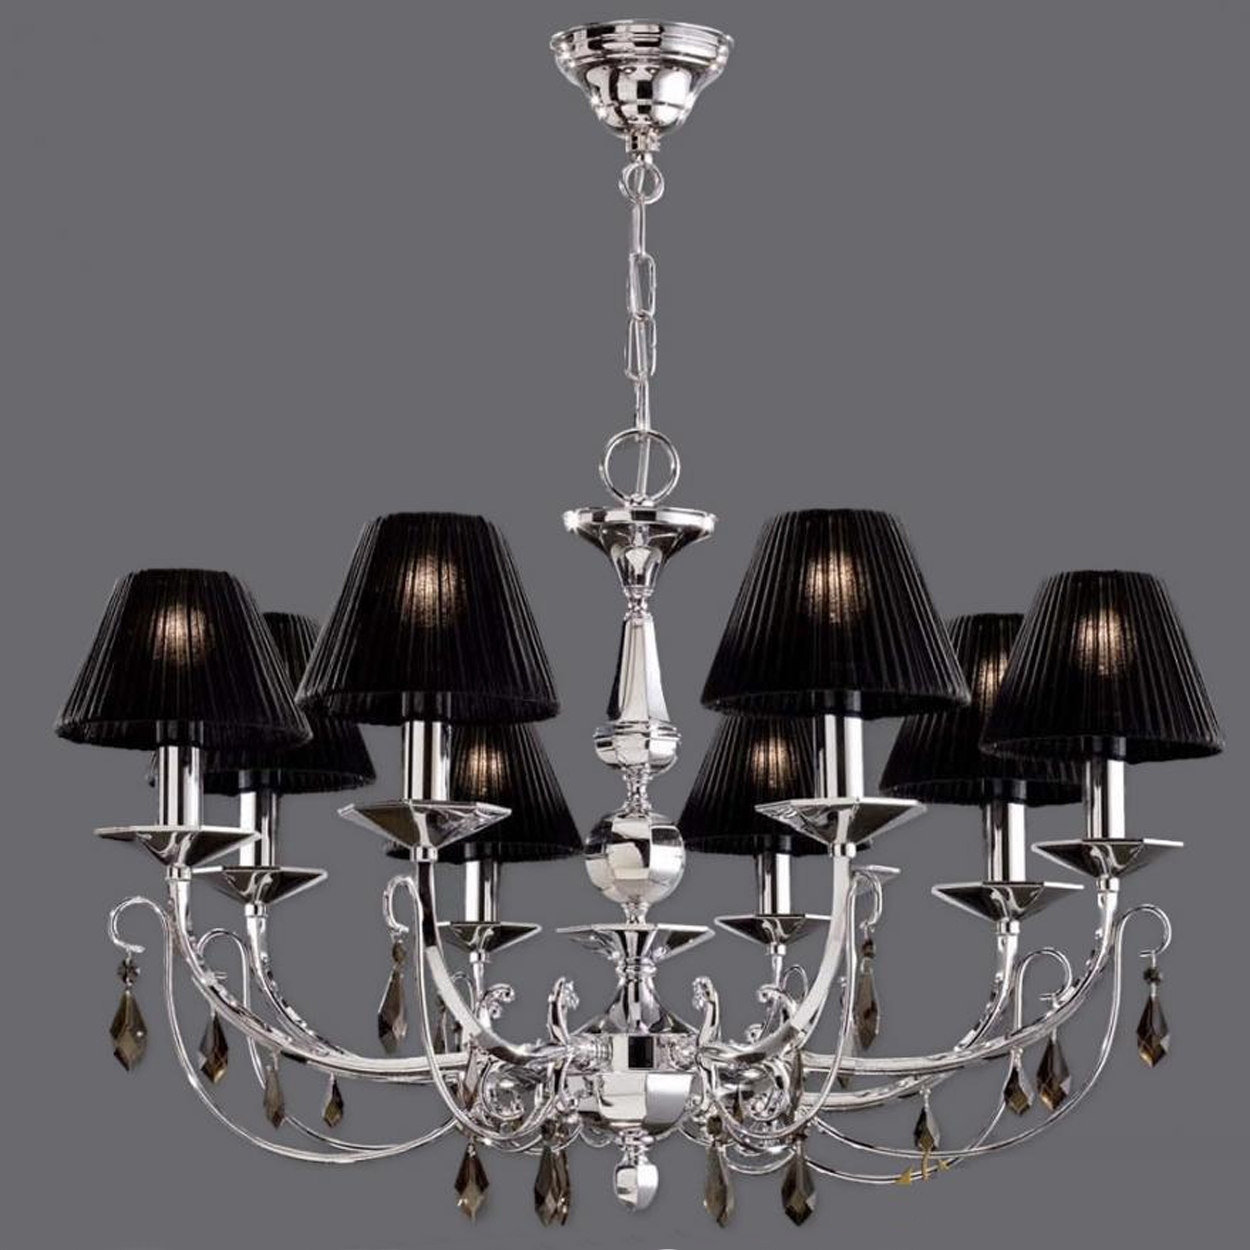 Lamp Shades For Chandelier The Best Chandelier Lamp Shades Throughout Chandelier Lampshades (Image 18 of 25)